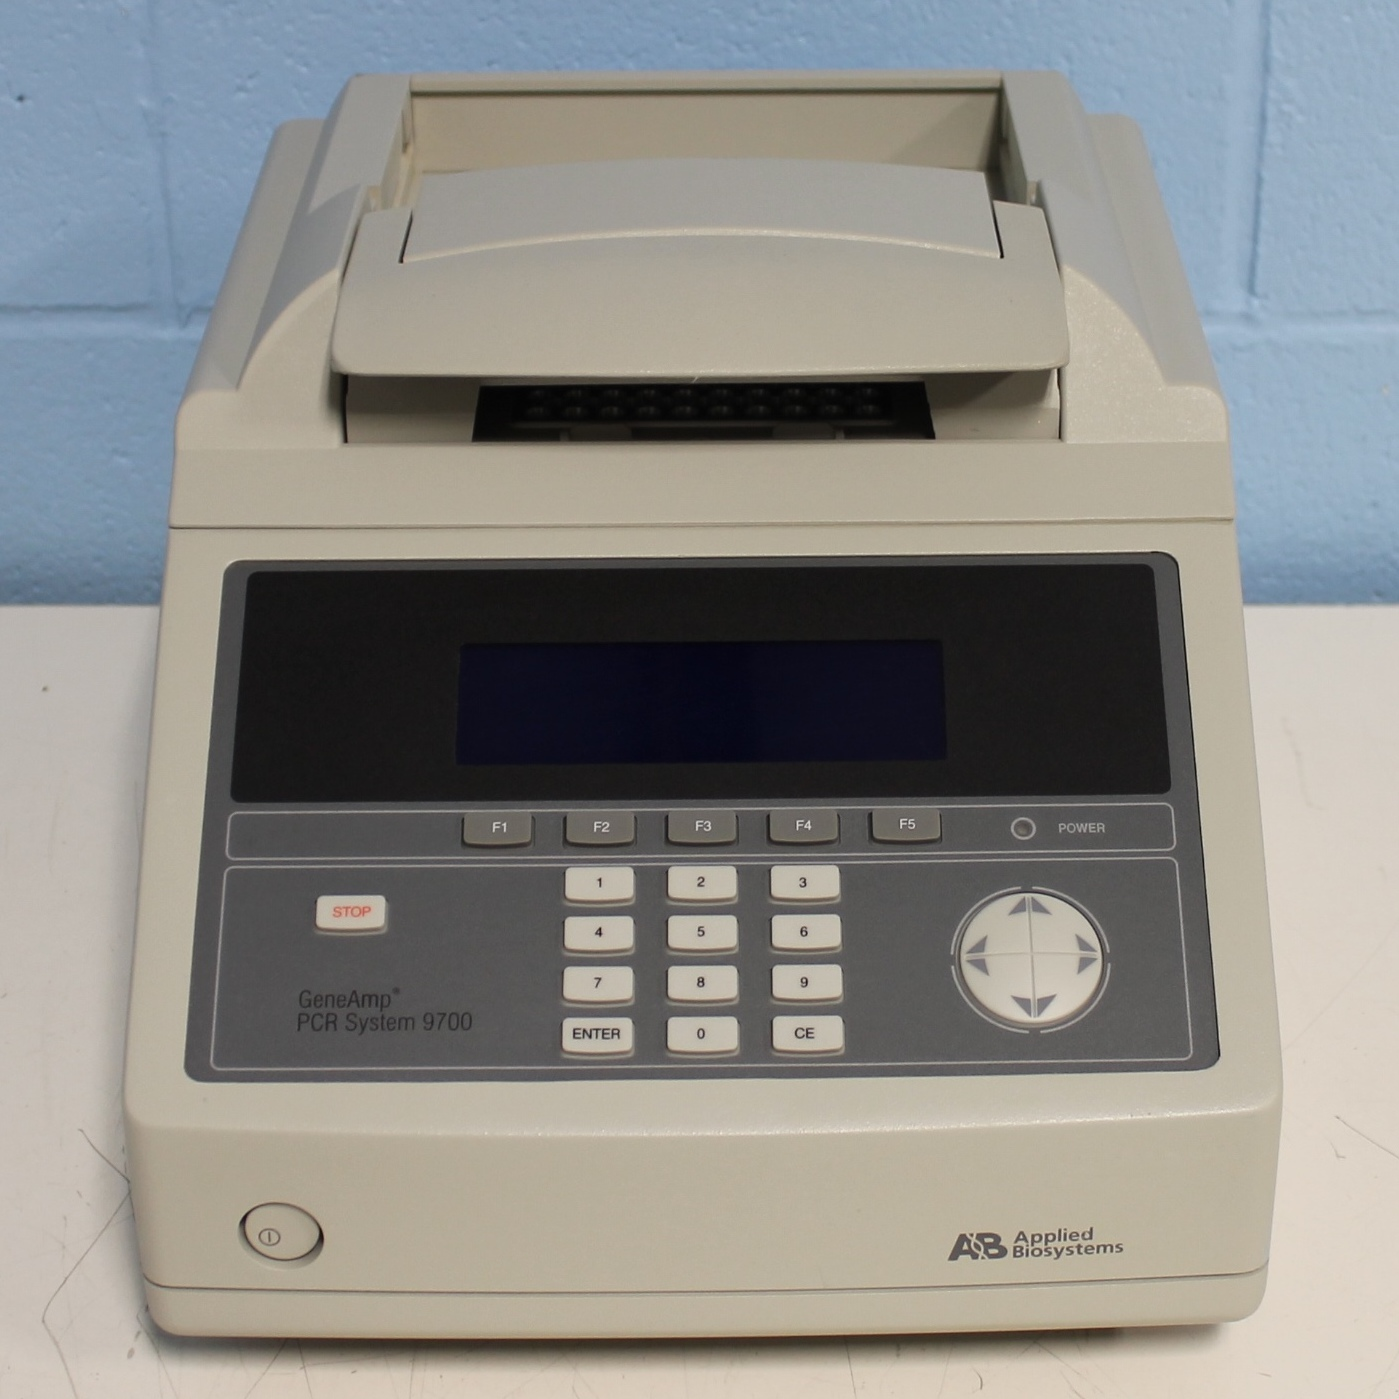 GeneAmp PCR System 9700